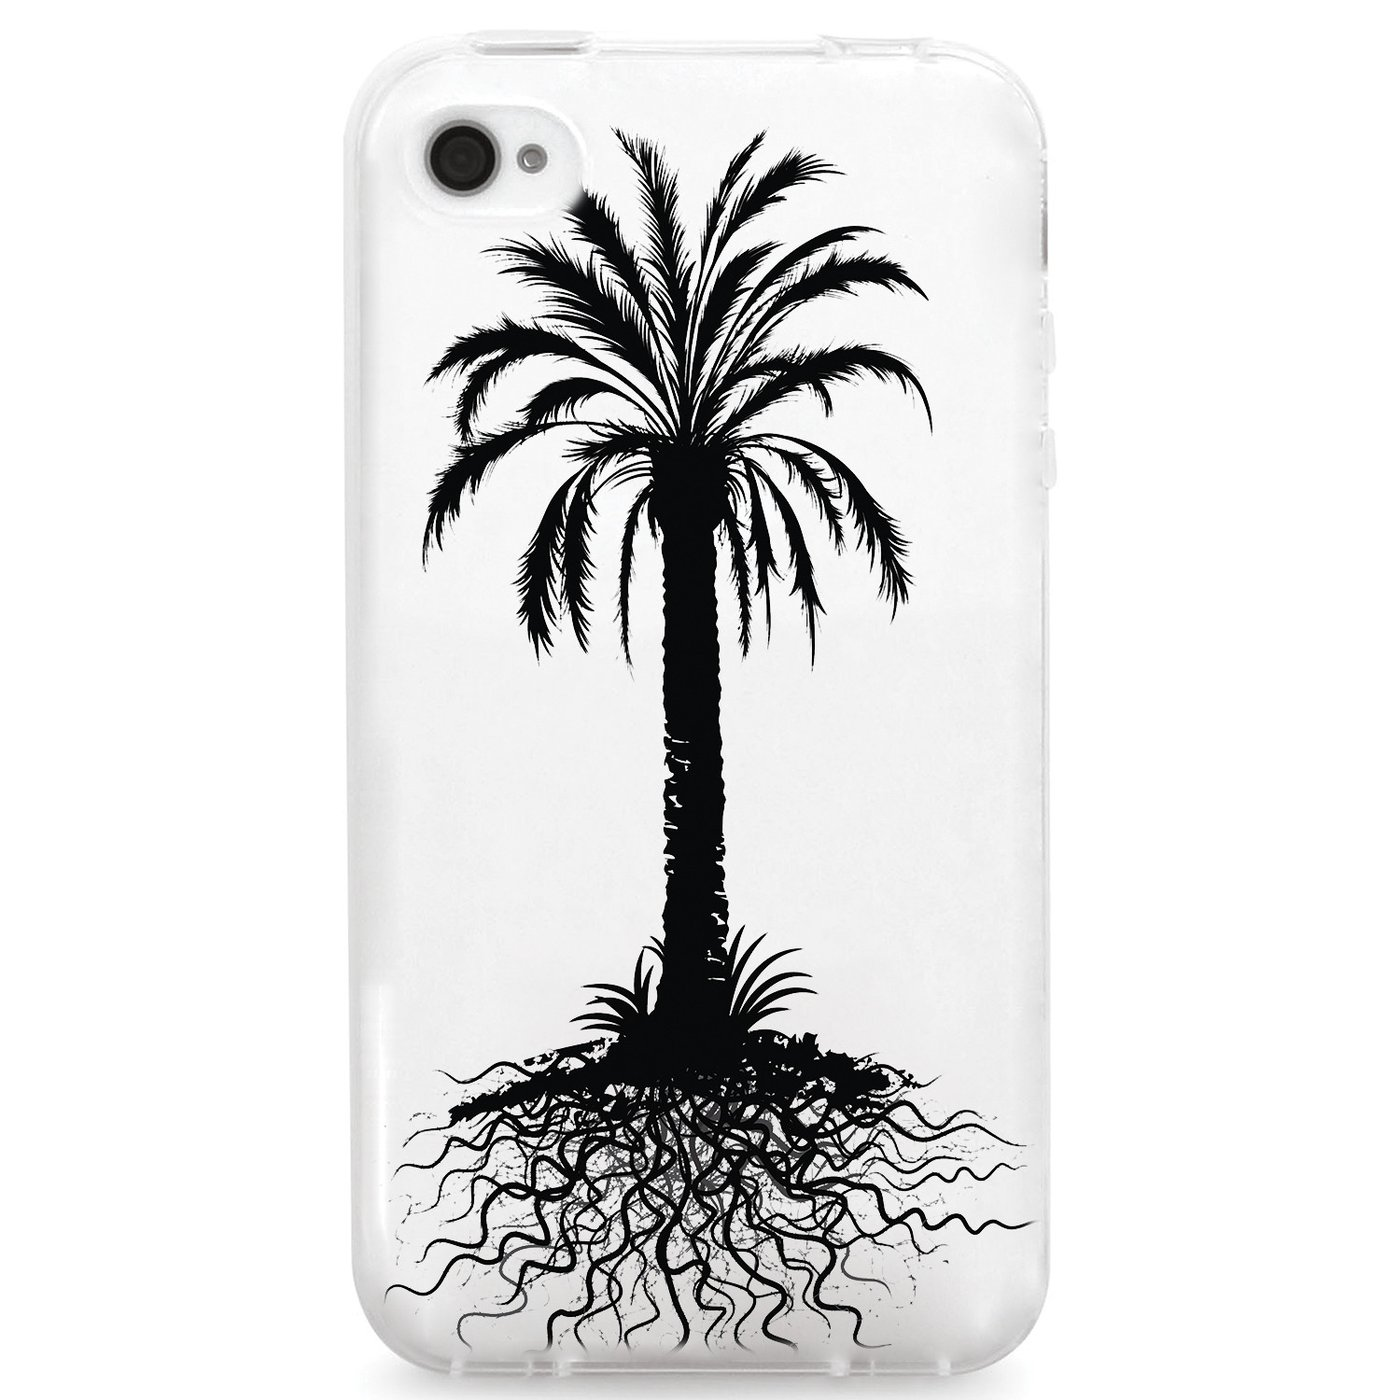 1400x1400 Uv Printed Tpu Case Floral Summer Palm Tree Roots Silhouette